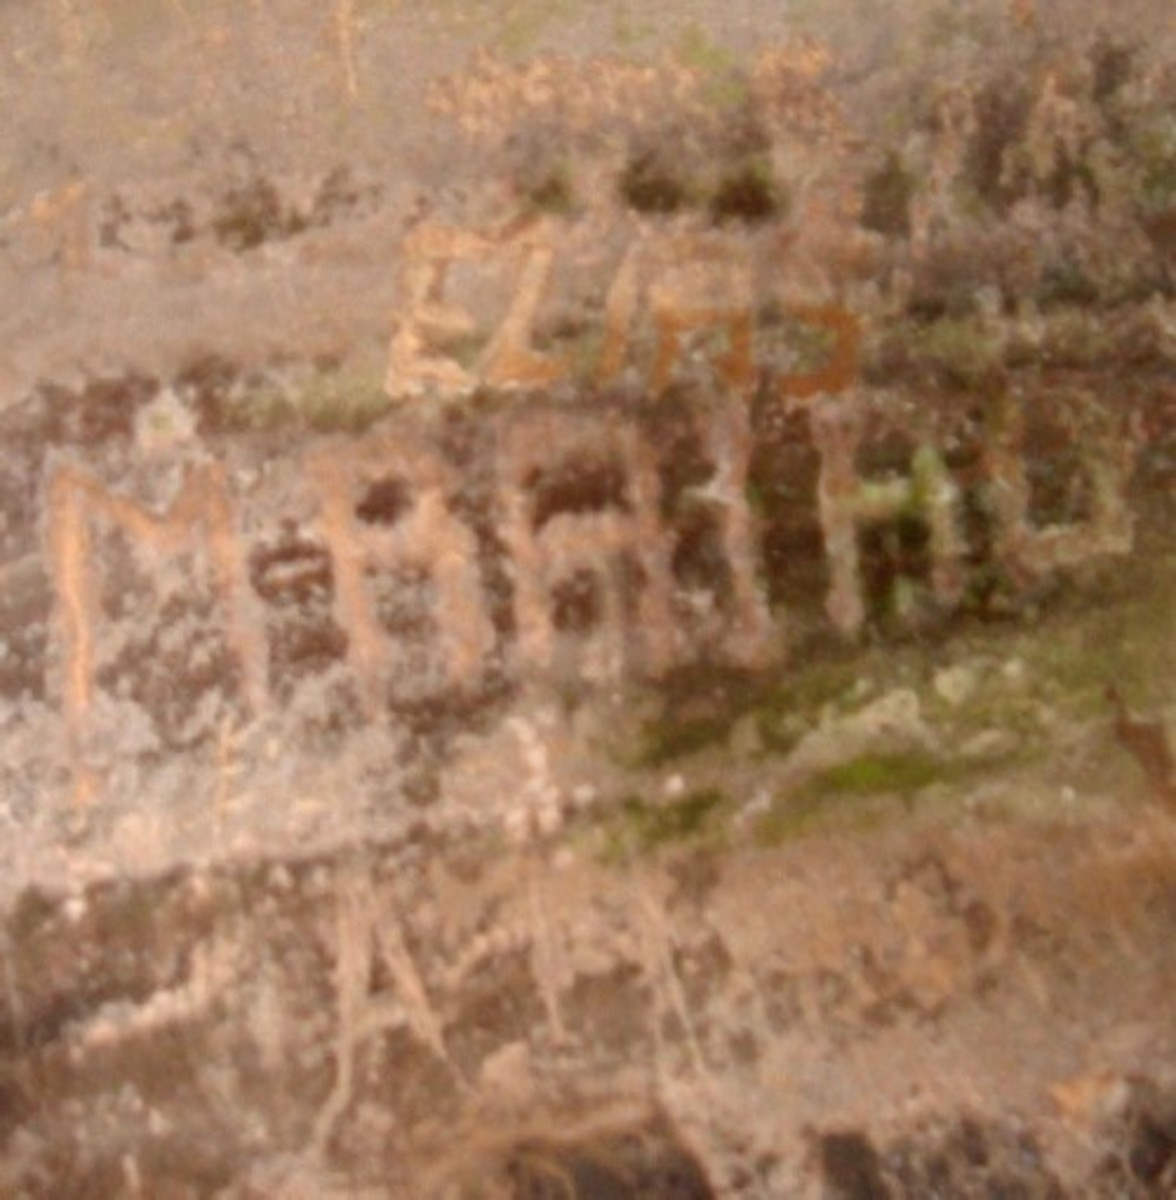 Writing on the wall in Barranco de Badajoz. Photo by Steve Andrews